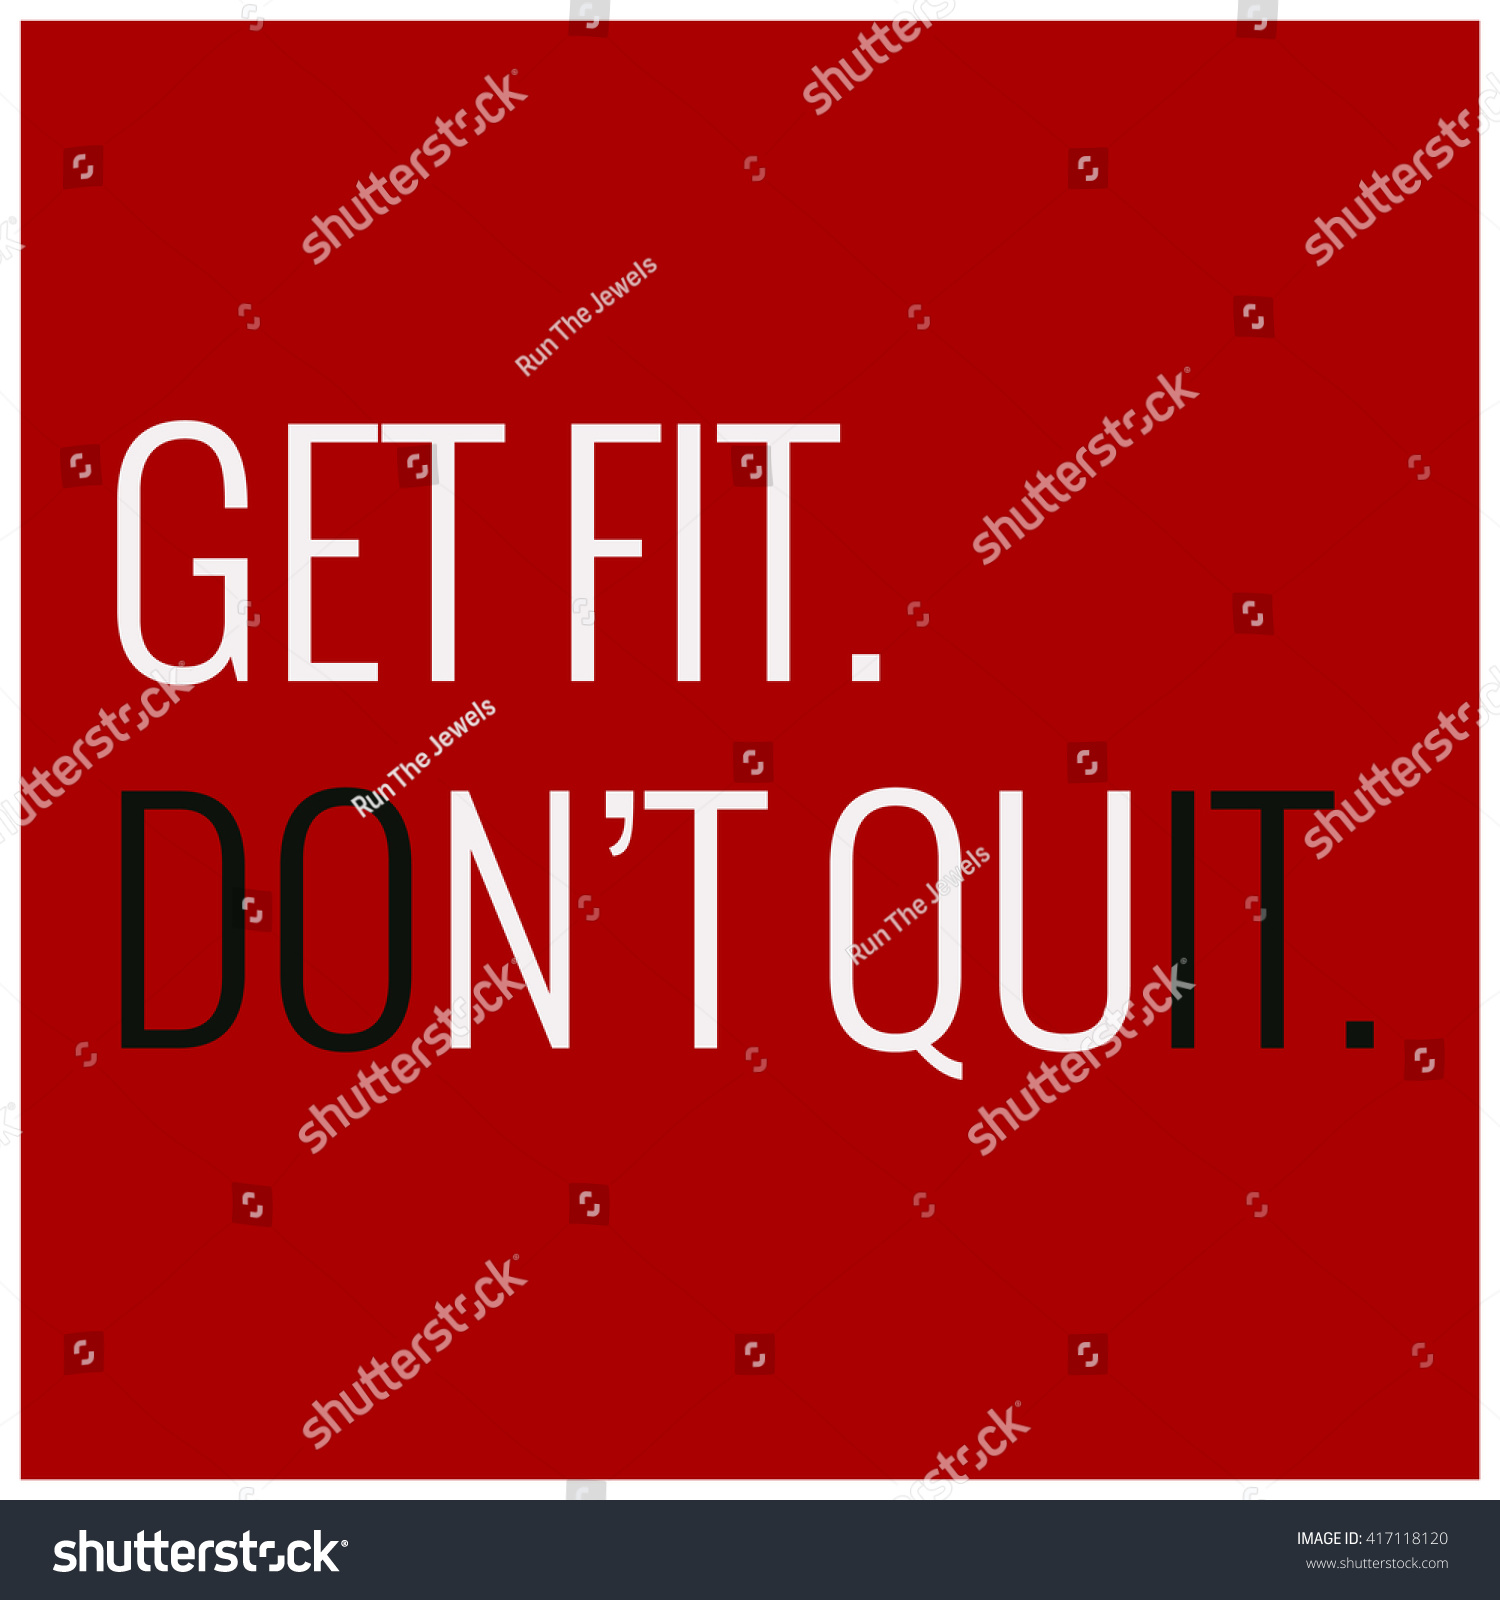 Stock illustration 3d red text quot yes quot stock illustration royalty -  Vectors Illustrations Footage Music Get Fit Don T Quit Motivational Quote Gym Poster Design